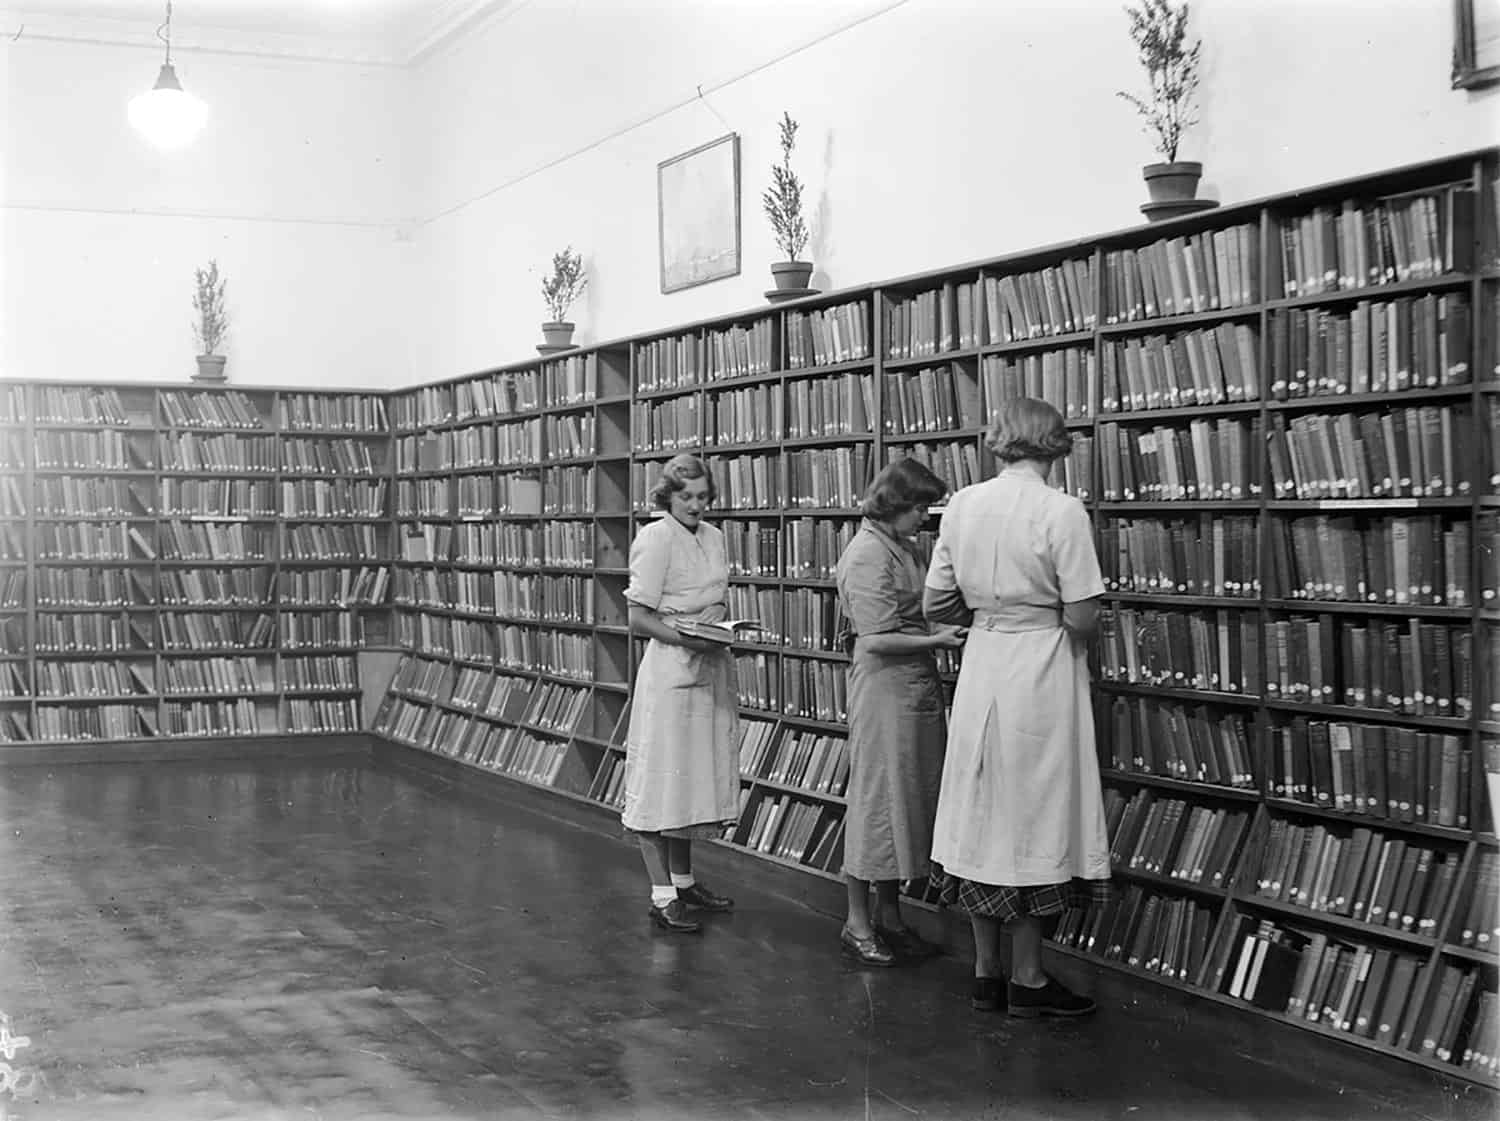 Women reading books in a library